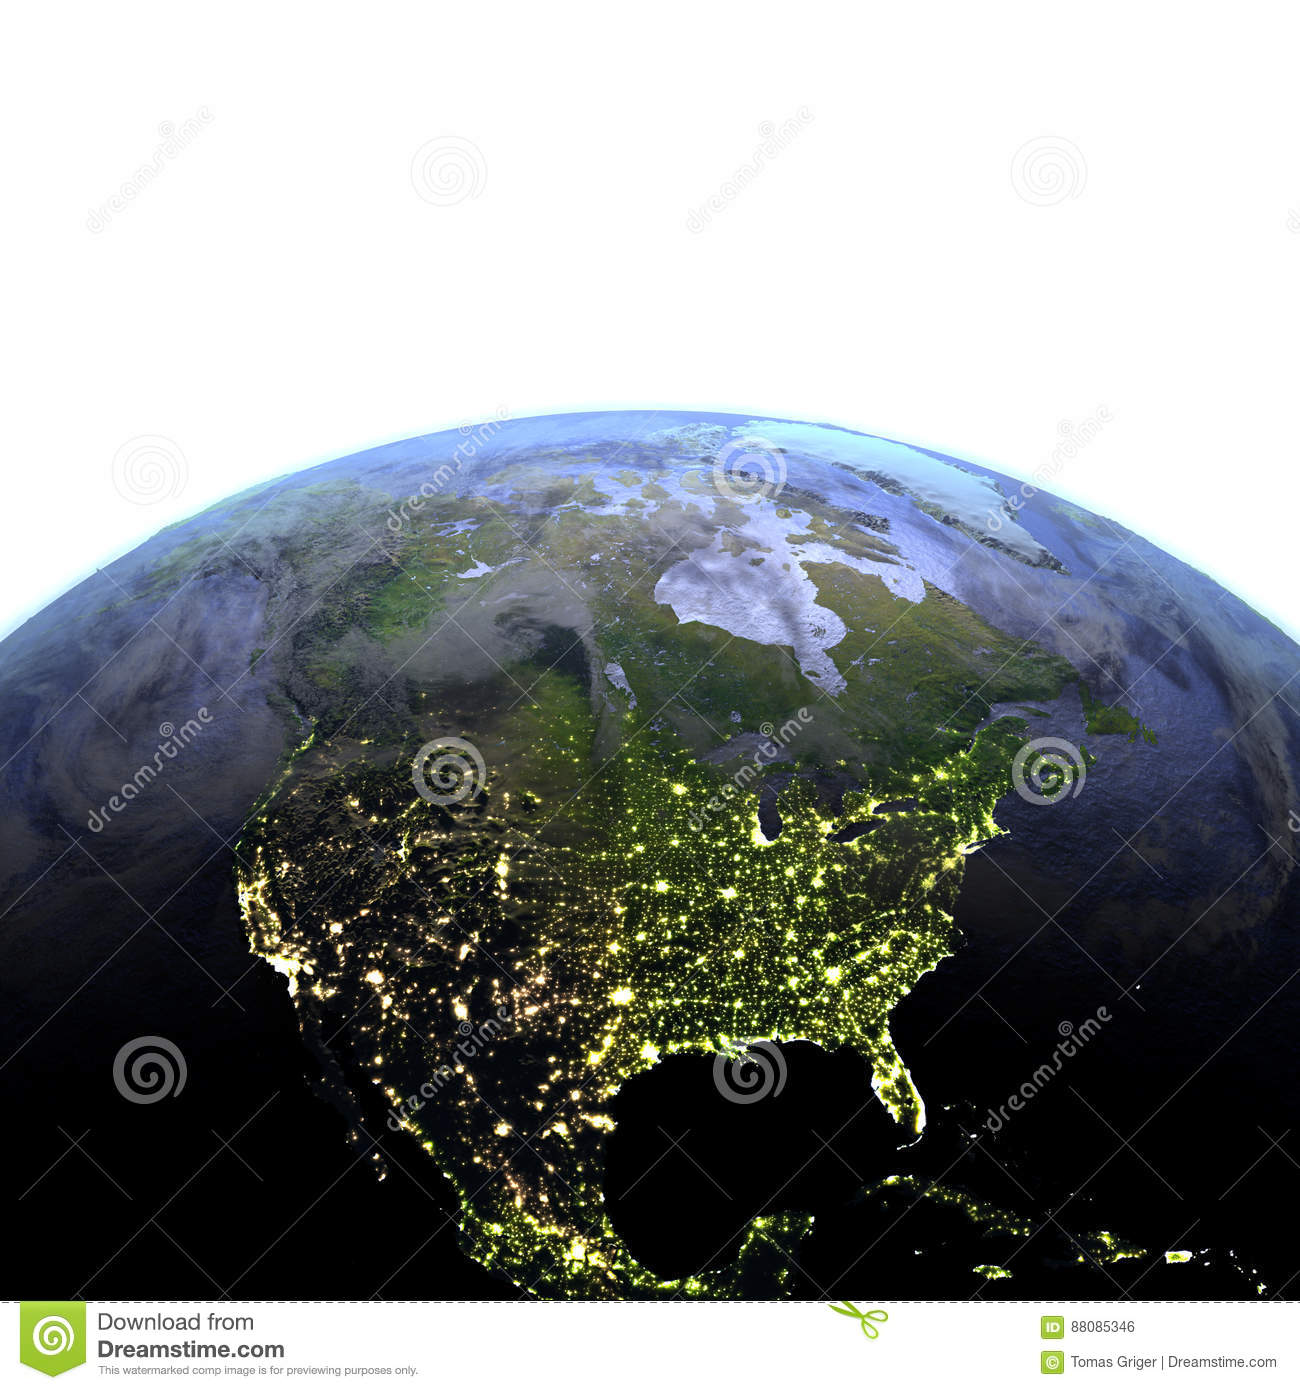 North America at night on realistic model of Earth